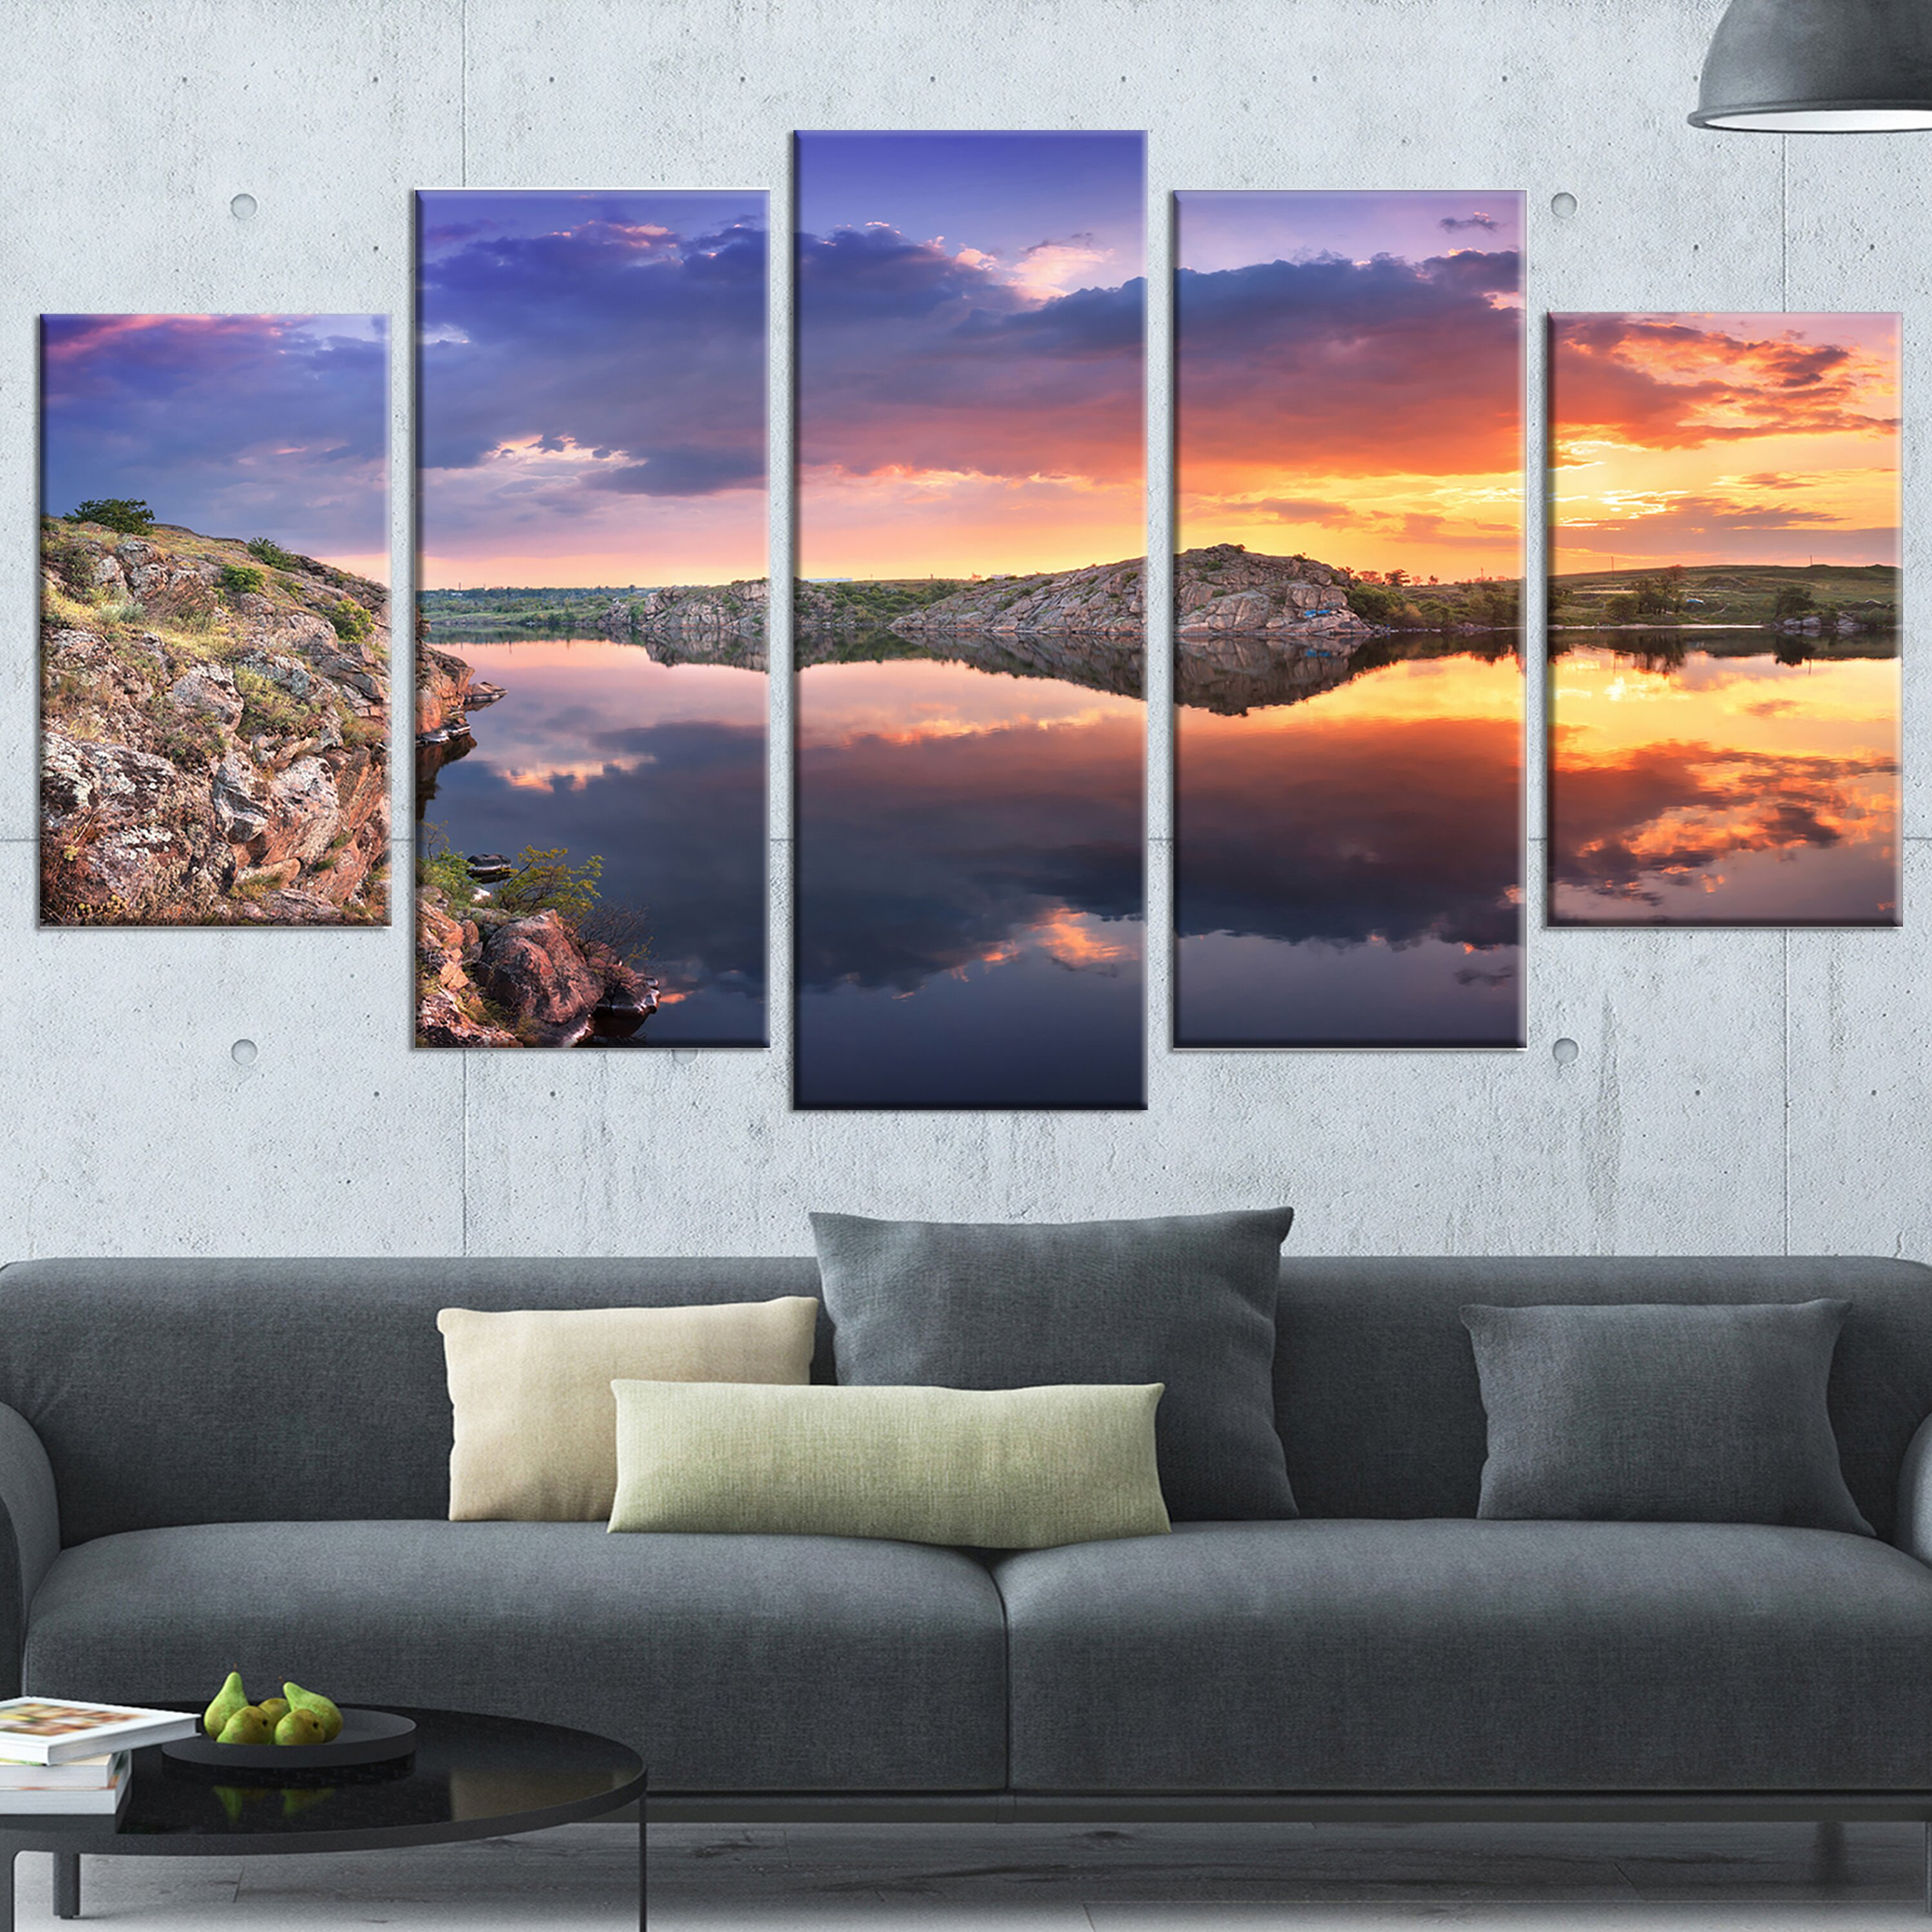 designart 39 large summer clouds reflection 39 5 piece wall art on wrapped canvas set wayfair. Black Bedroom Furniture Sets. Home Design Ideas